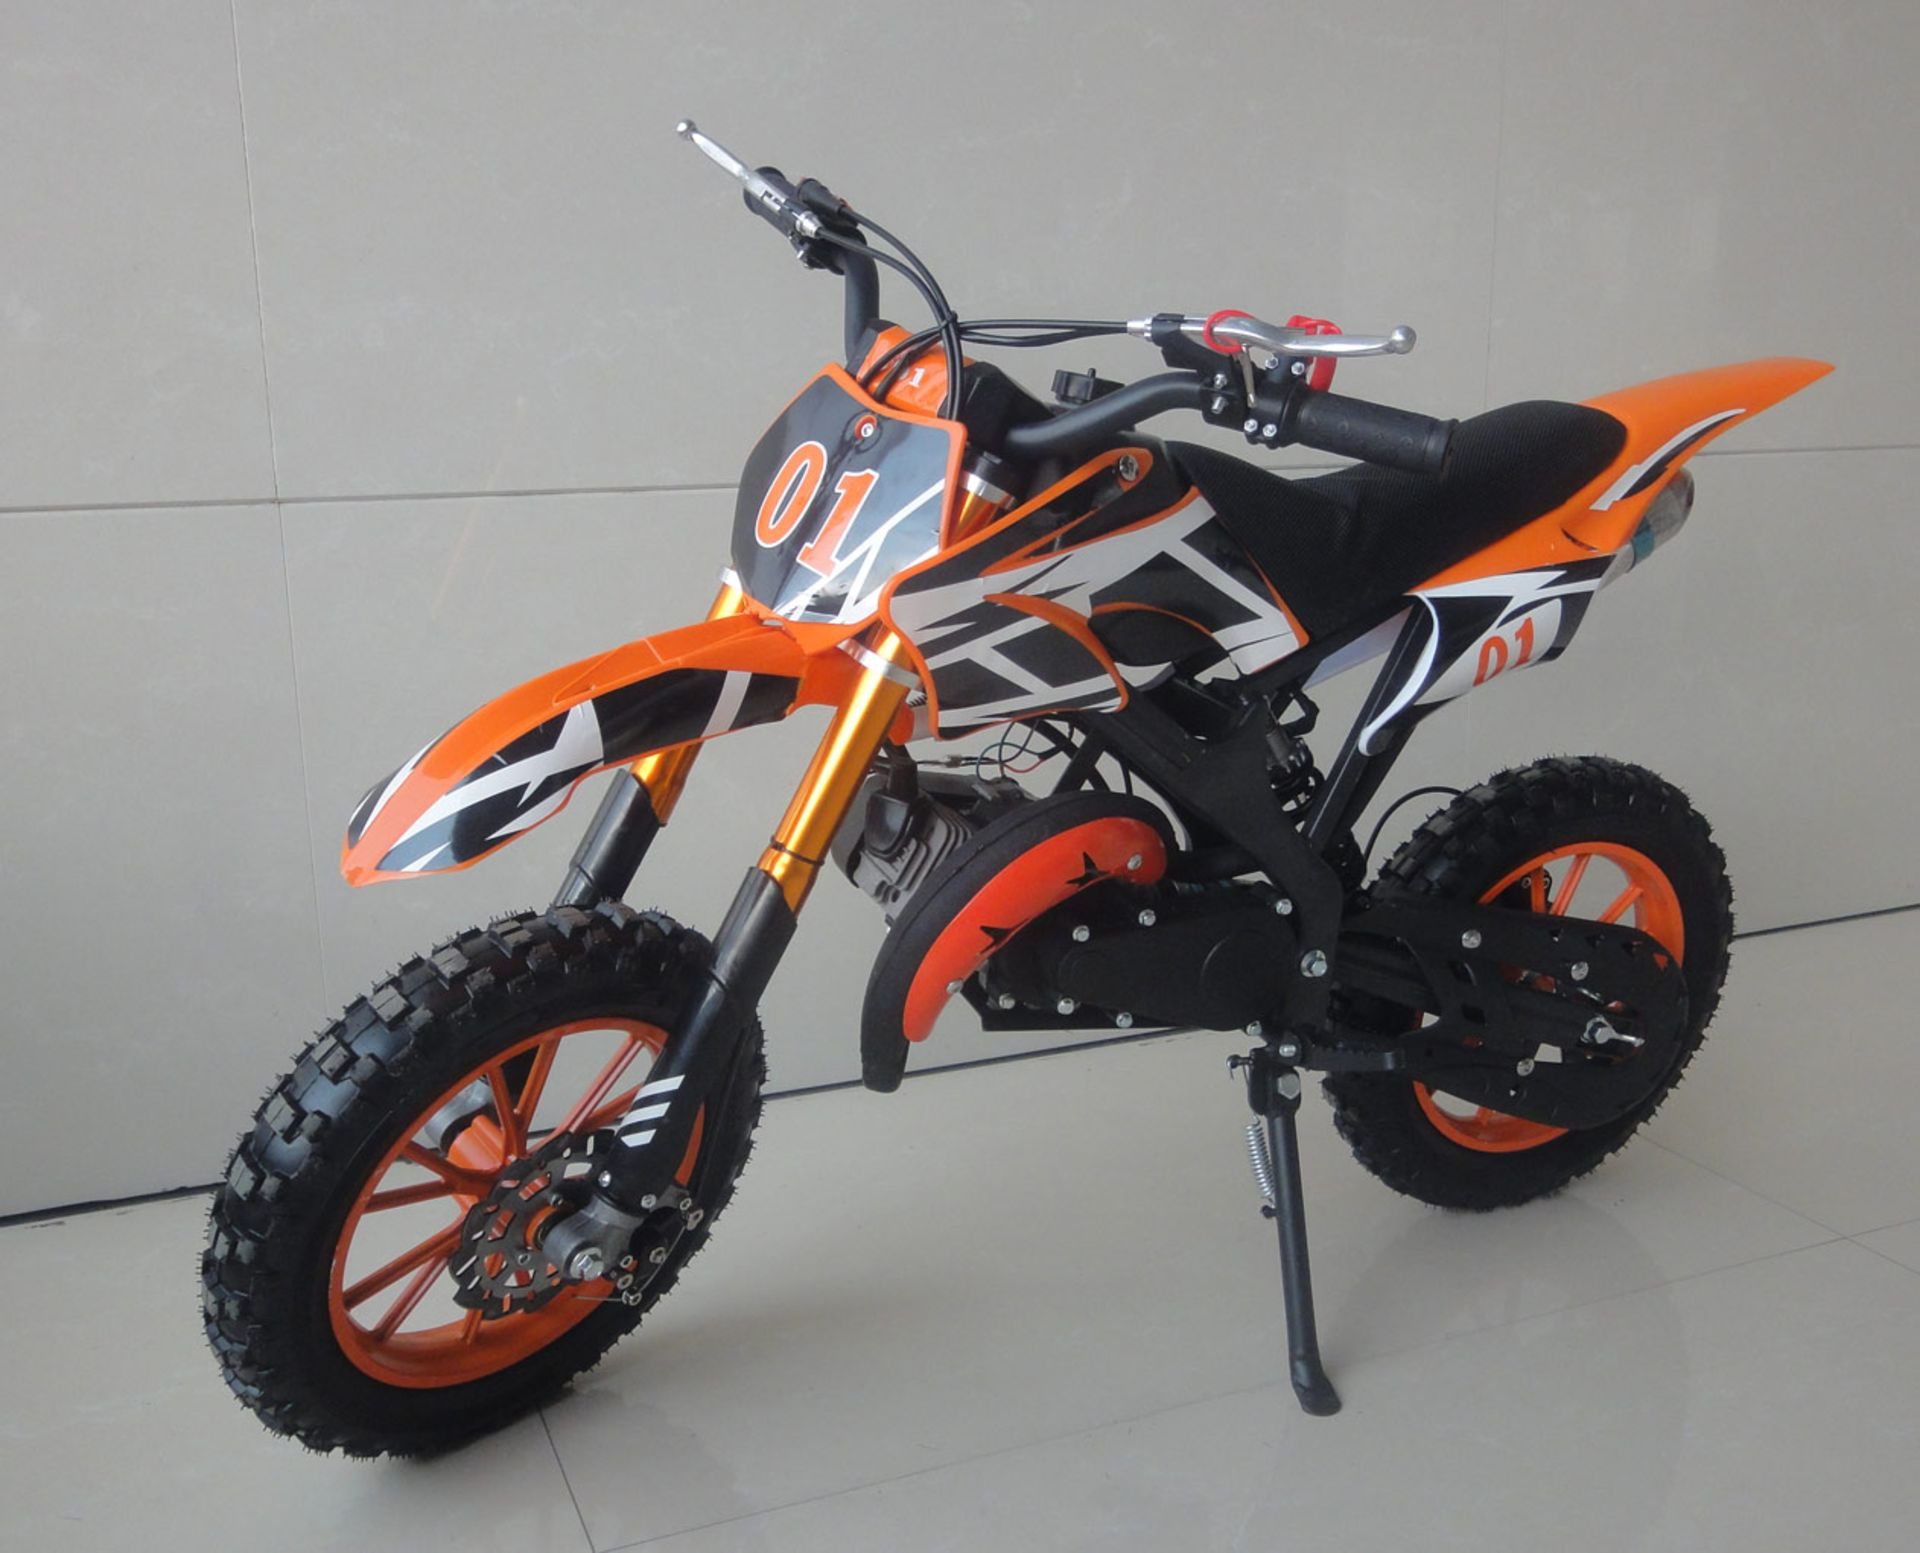 + VAT Brand New 49cc Falcon Mini Dirt Bike - Full Front & Rear Suspension - Disc Brakes - Easy Pull - Image 5 of 6